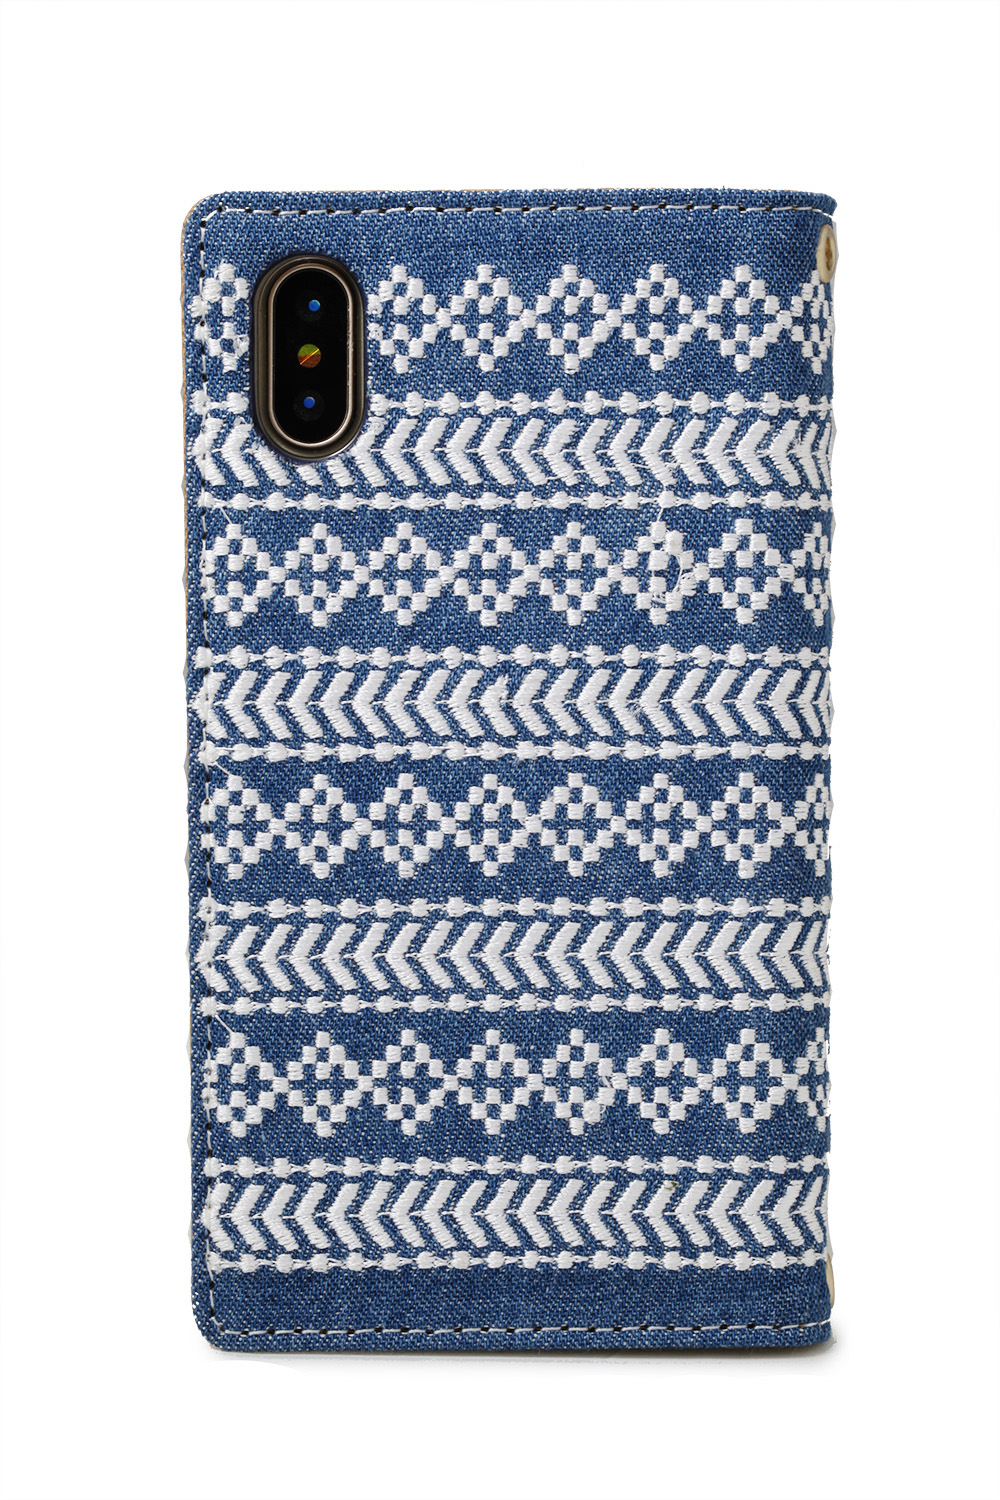 Folklore Diary For iPhone X Case